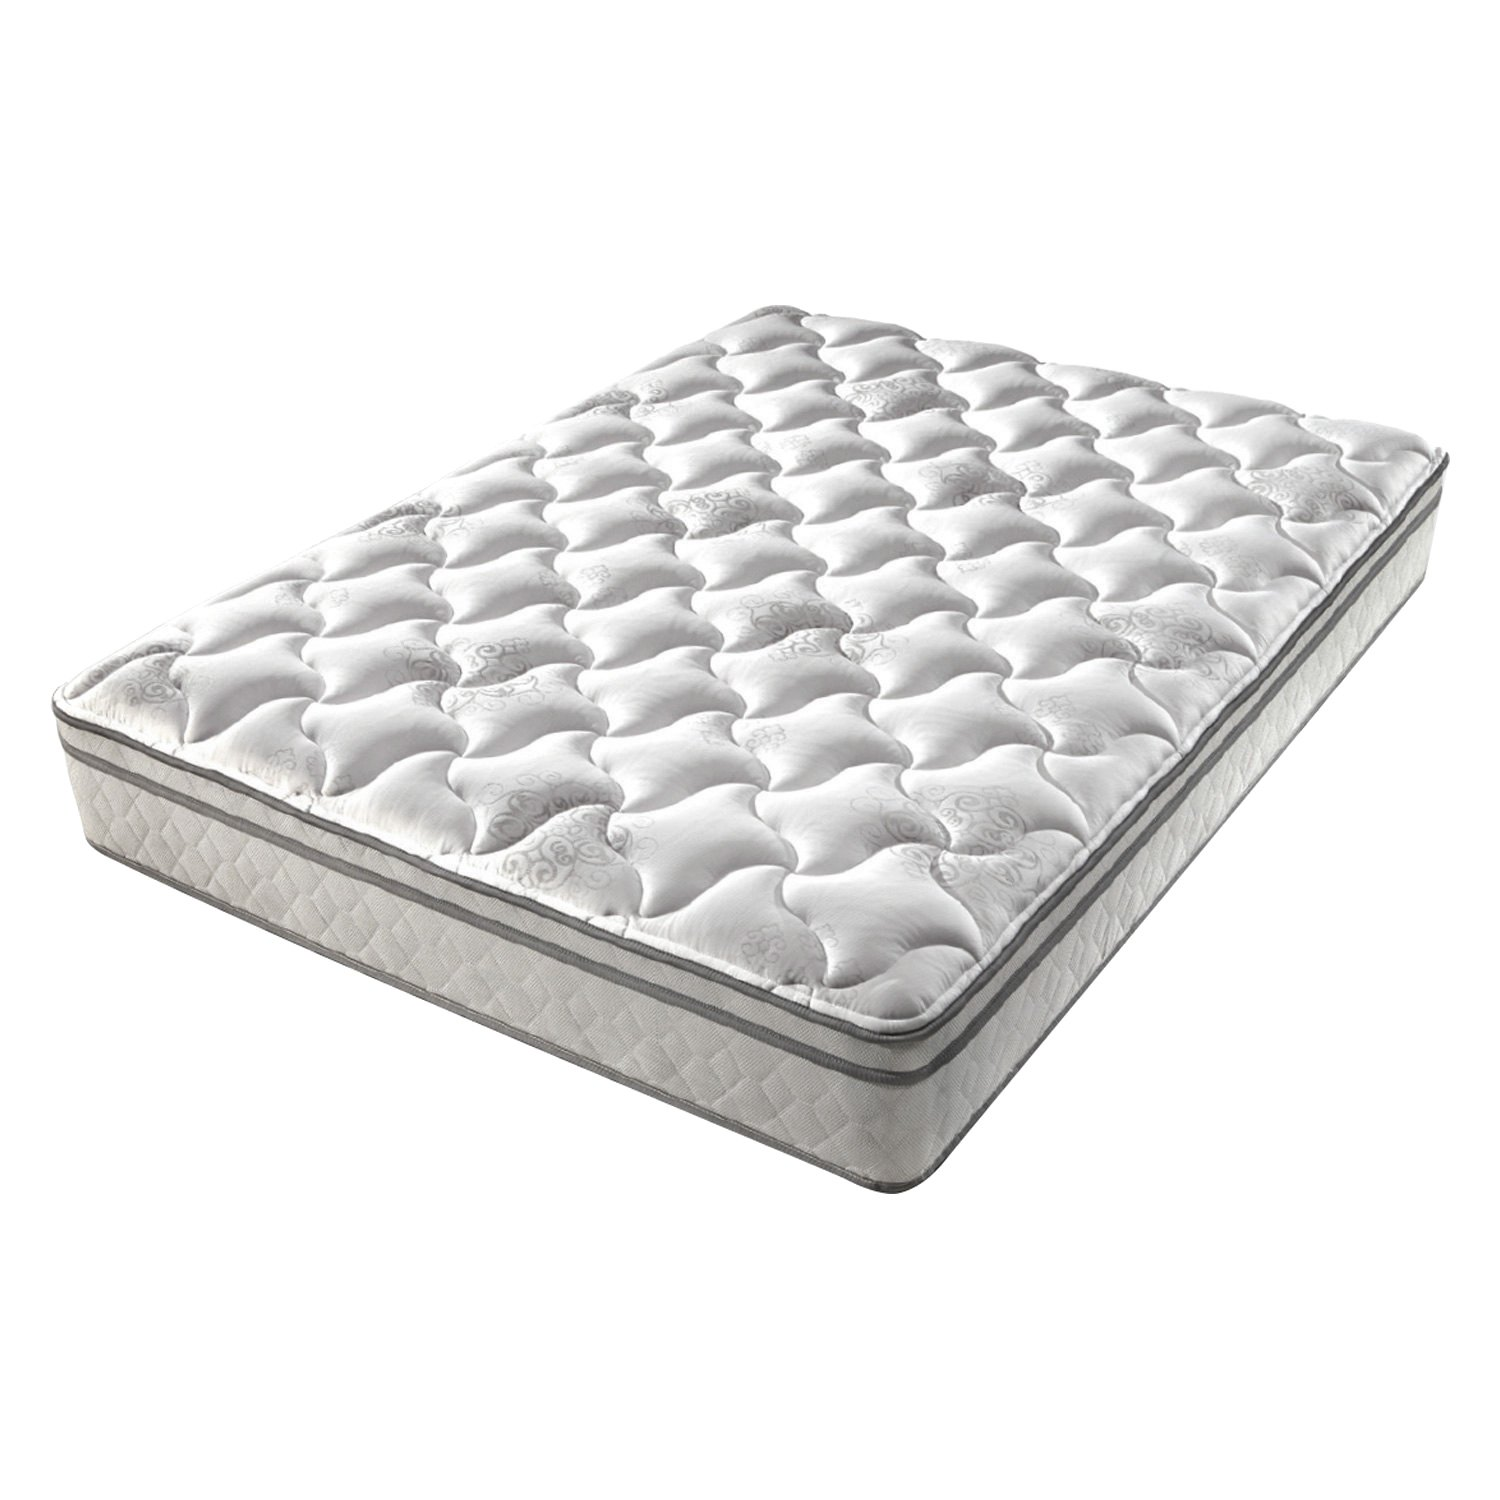 Denver Mattress 326393 Supreme Euro Top Narrow King Mattress